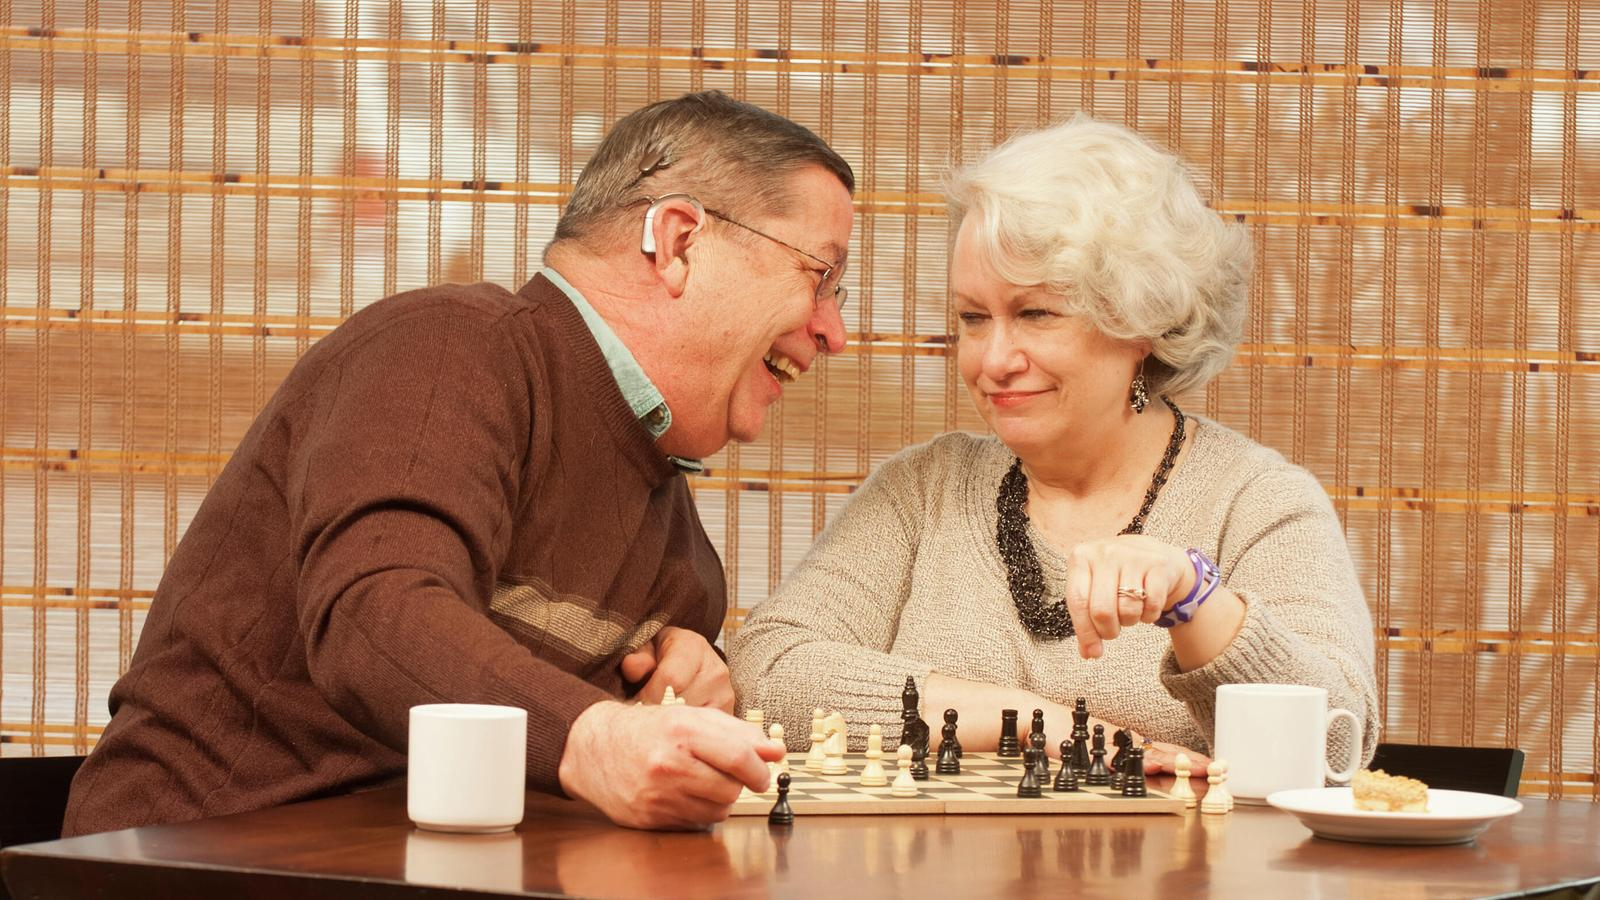 Recipient Bill and wife Pam having fun playing chess game